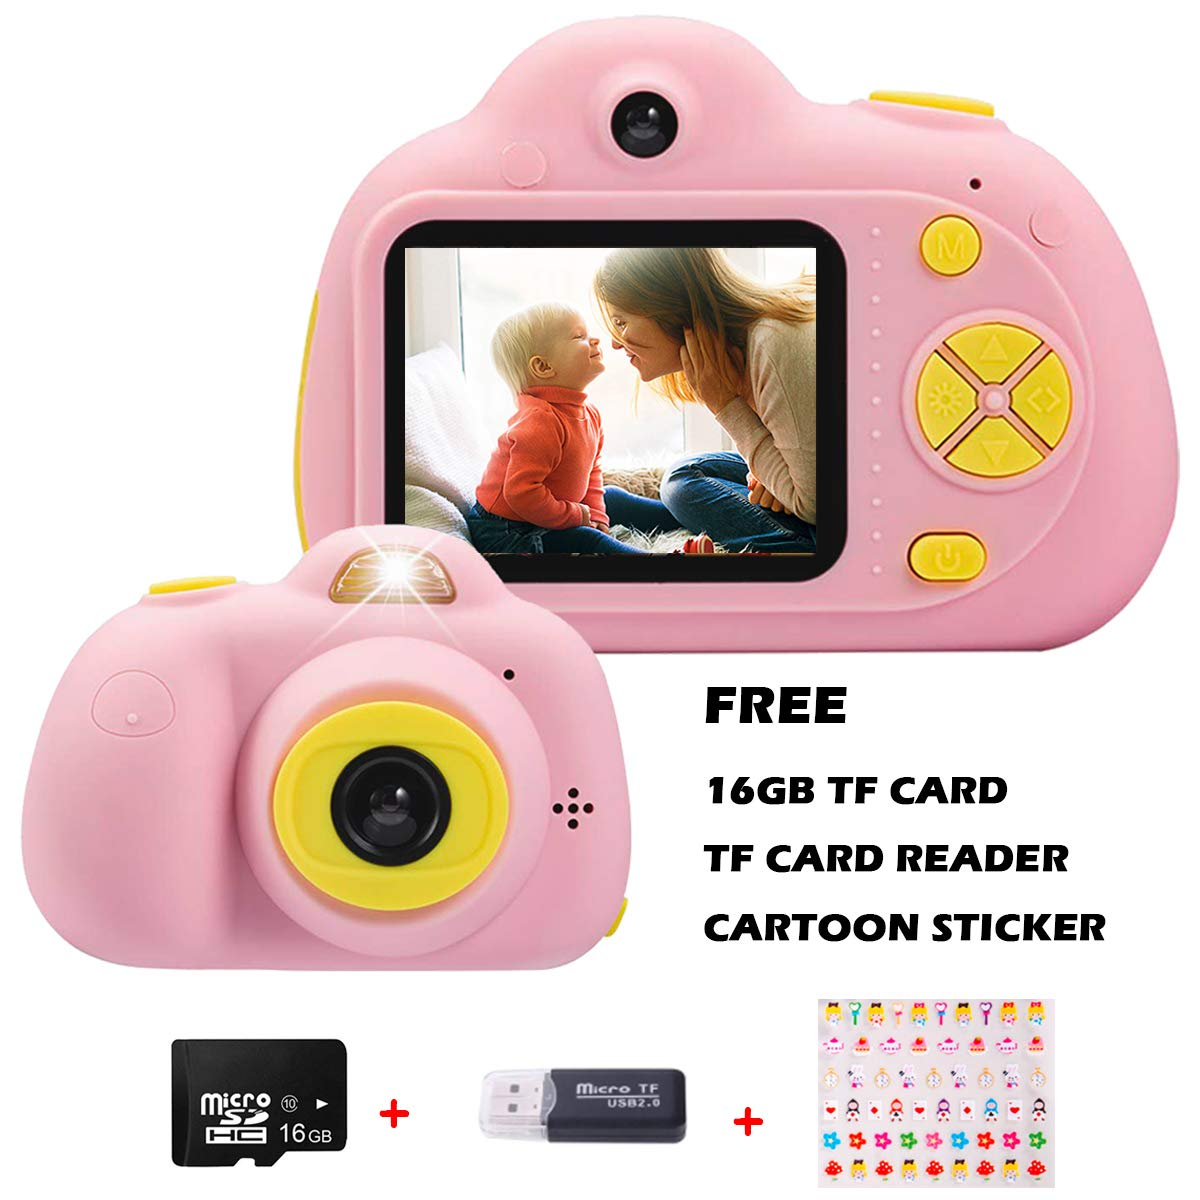 KIDOVE Kids Toys Fun Camera, Waterproof & Shockproof Child Selfie digital game Camcorder, 8MP 1080P dual camera Video Recorder, Creative Birthday Gifts for girls and boys, 16GB TF Card Included (Pink) by KIDOVE (Image #1)